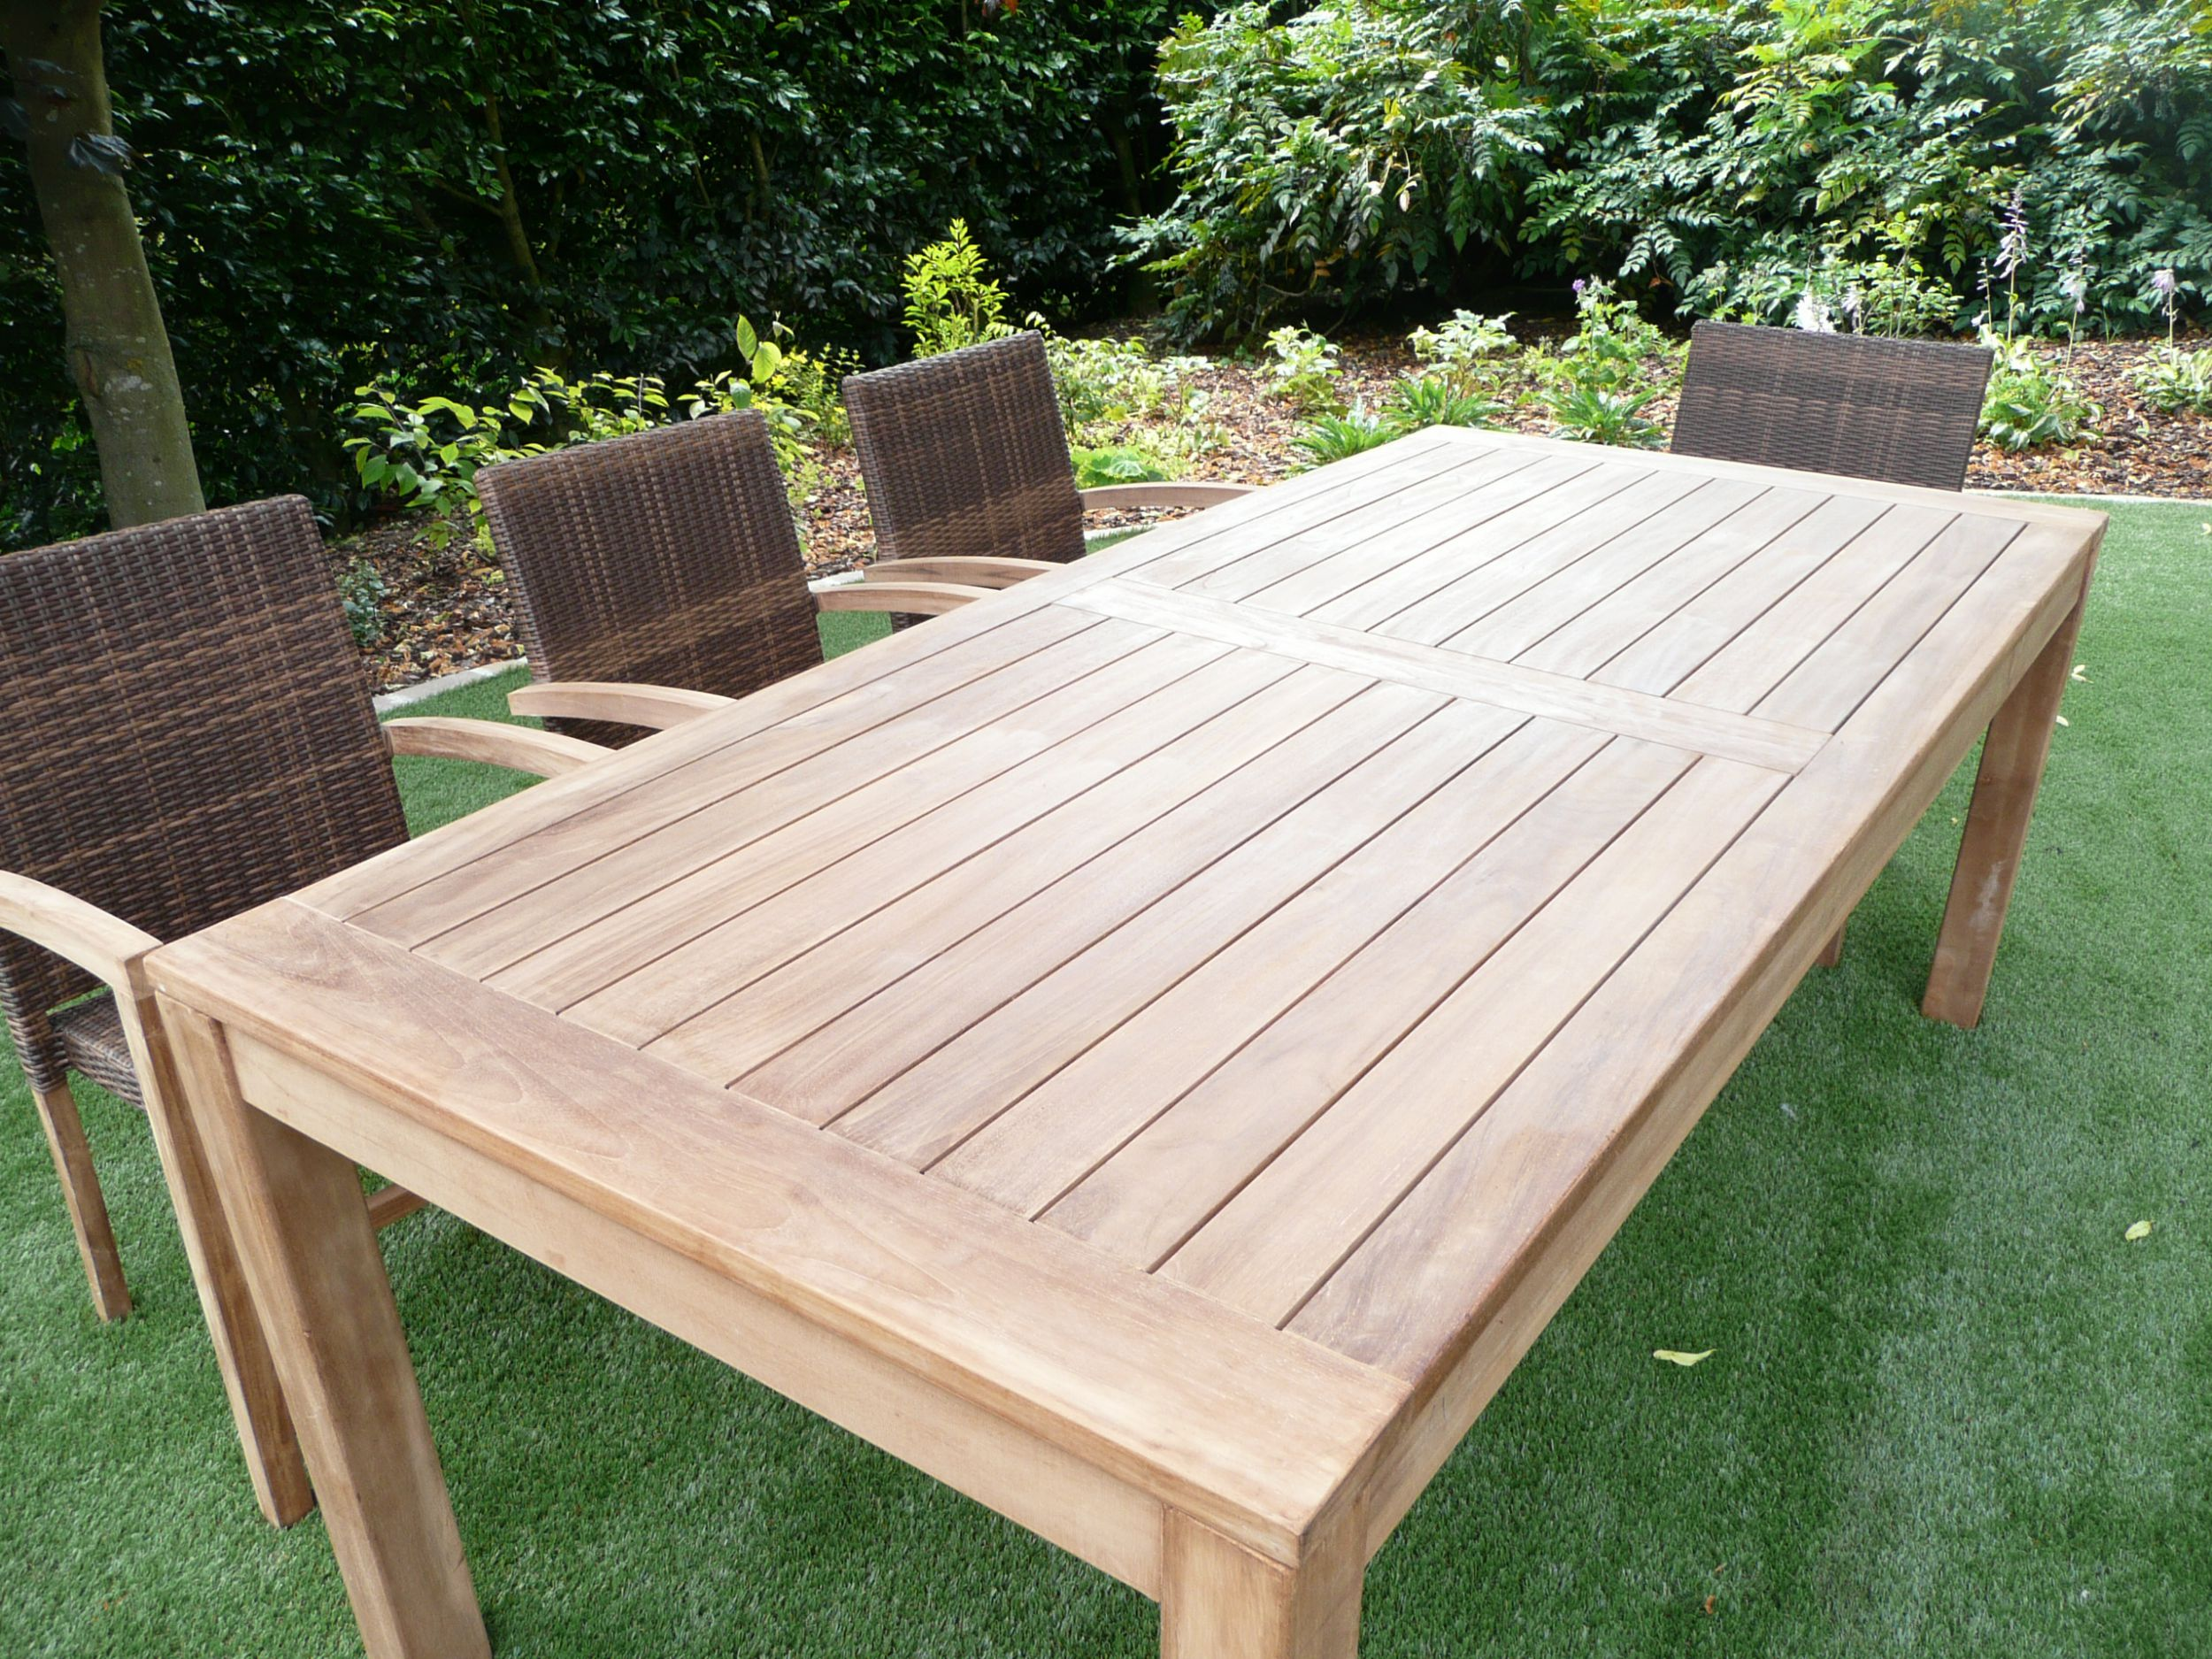 banner garden benches bench lister home loungers furniture teak chairs